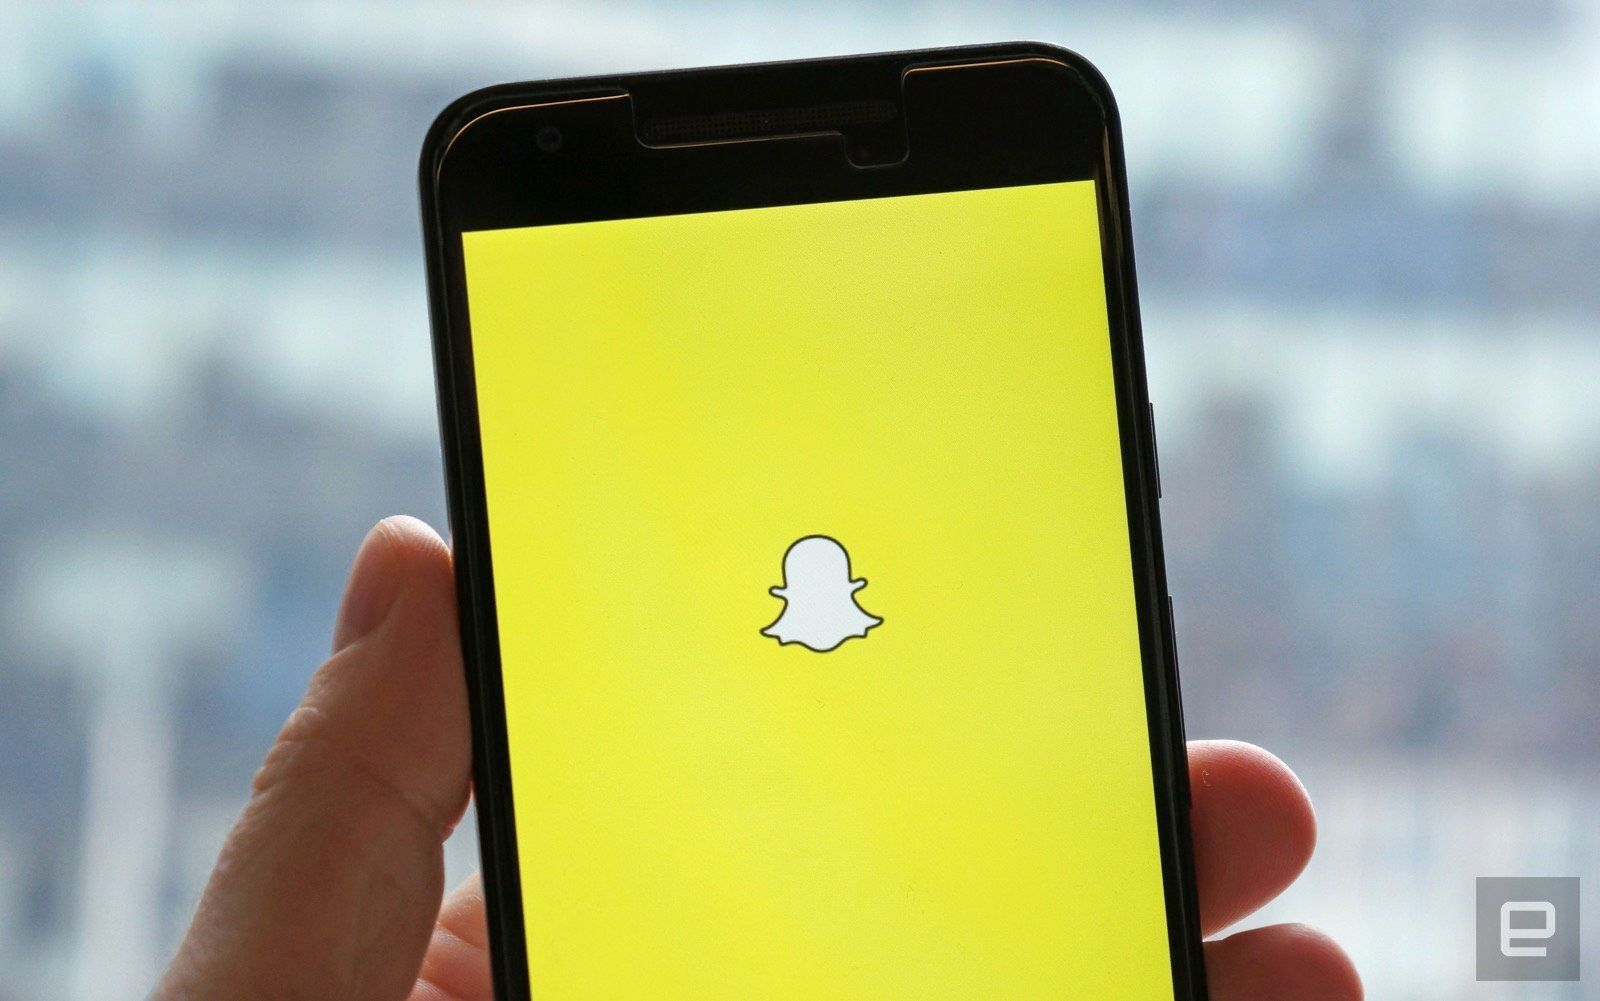 Facebook unveiled expanded suicide prevention tools Tuesday -- and Snapchat has some catching up to do.